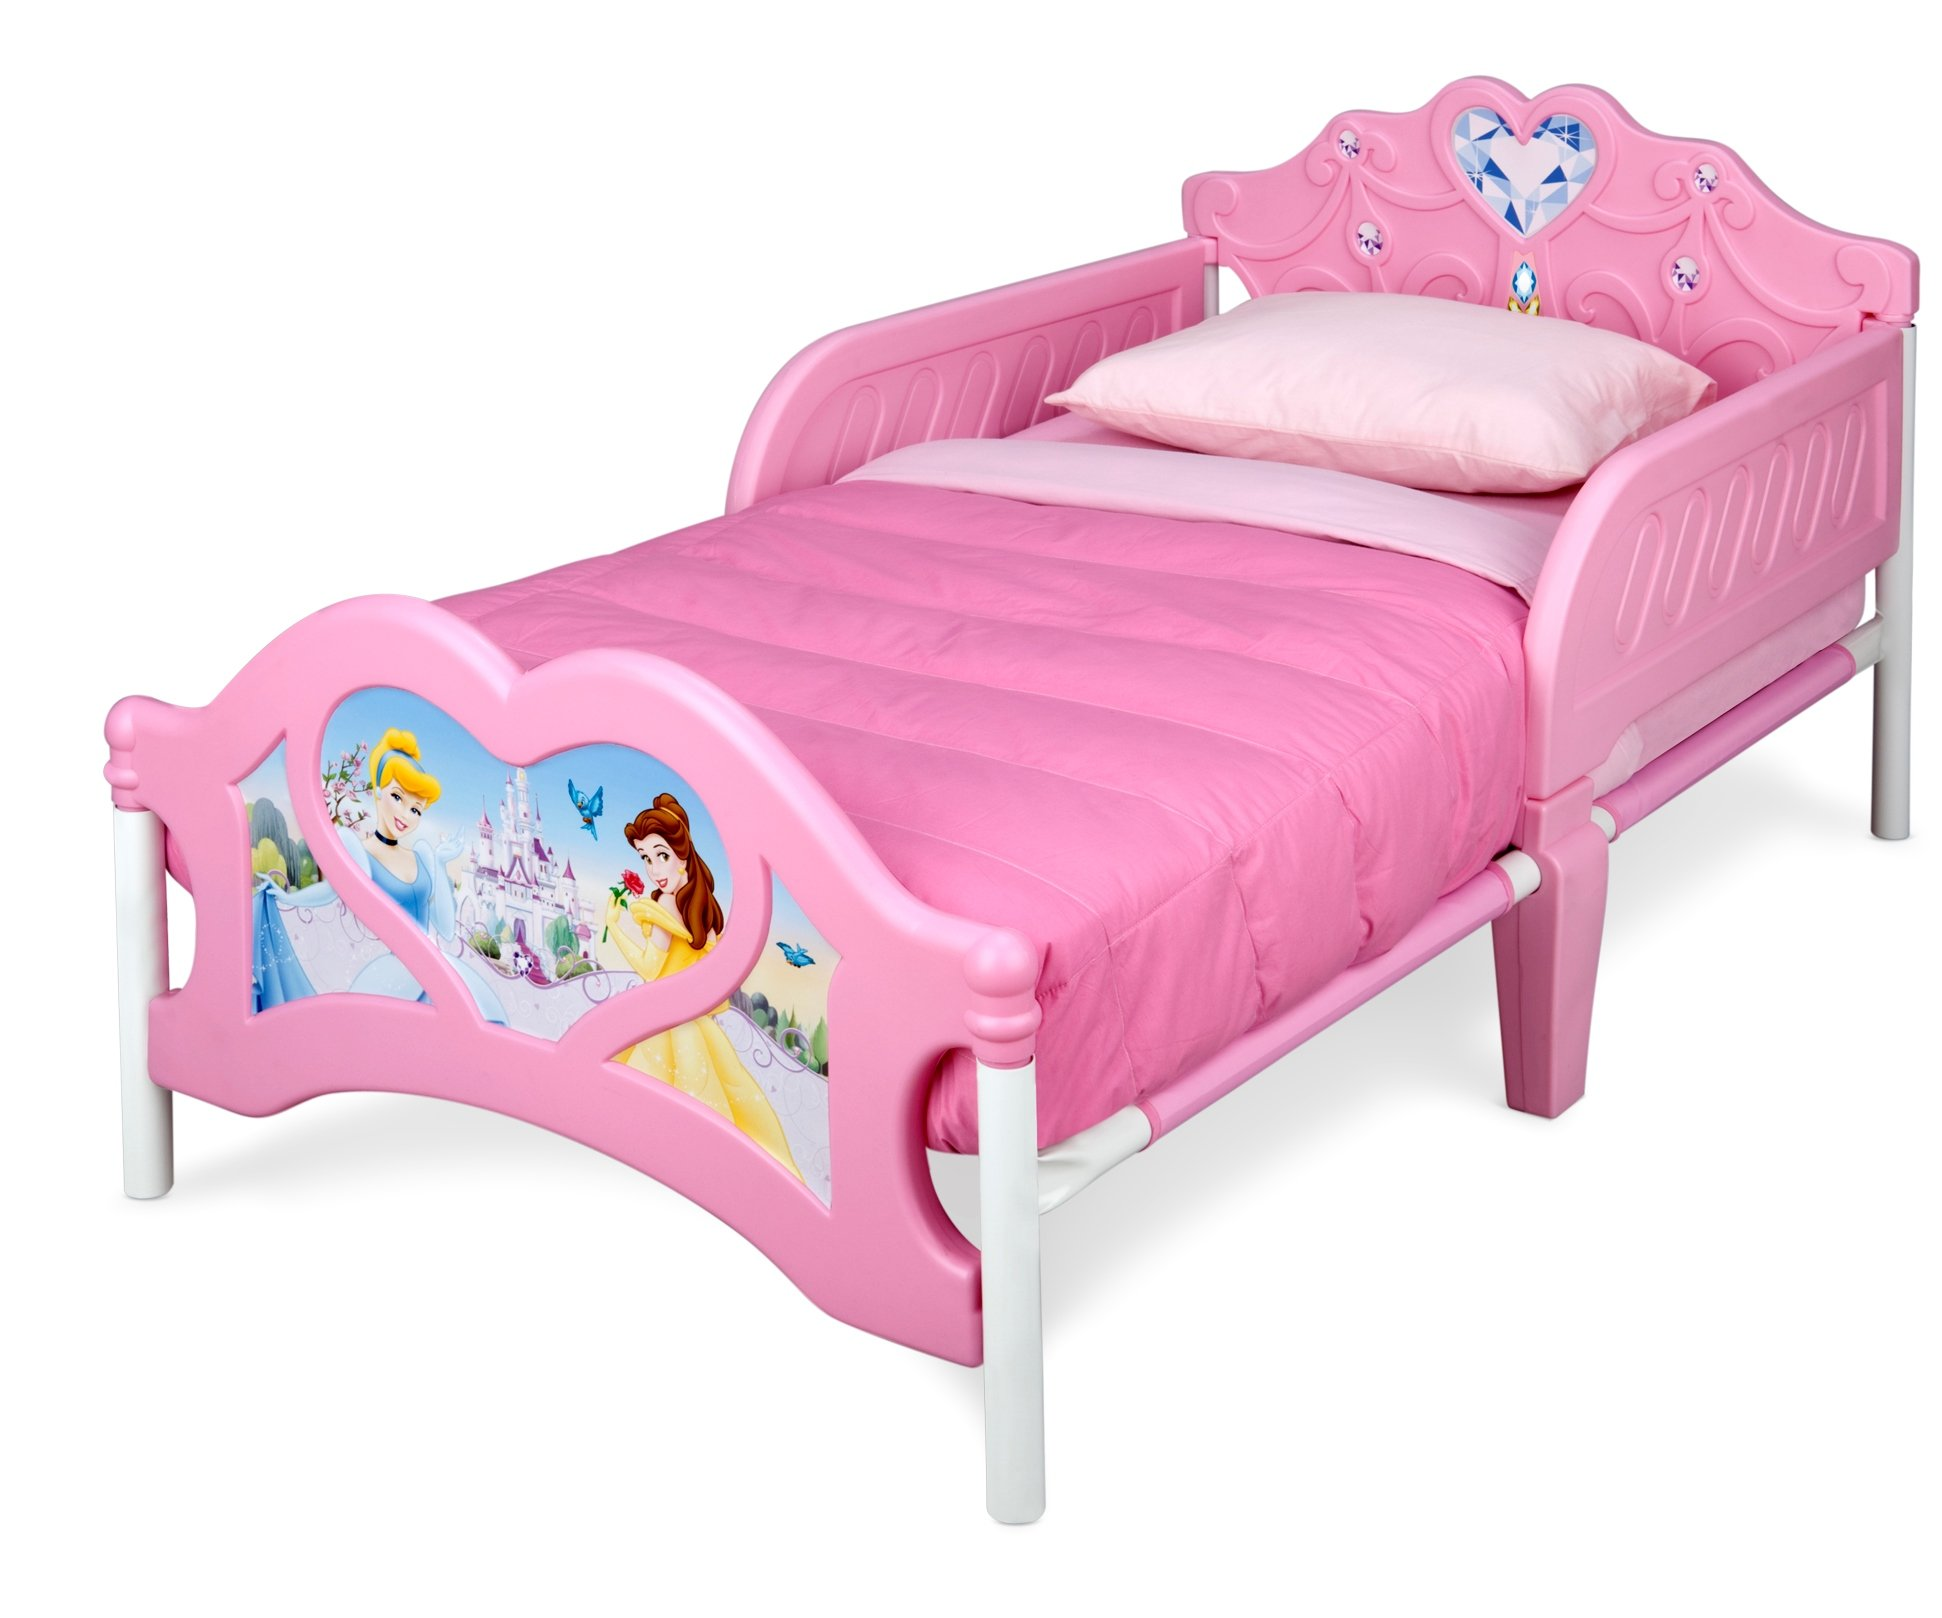 Disney Princess 3D Toddler Bed